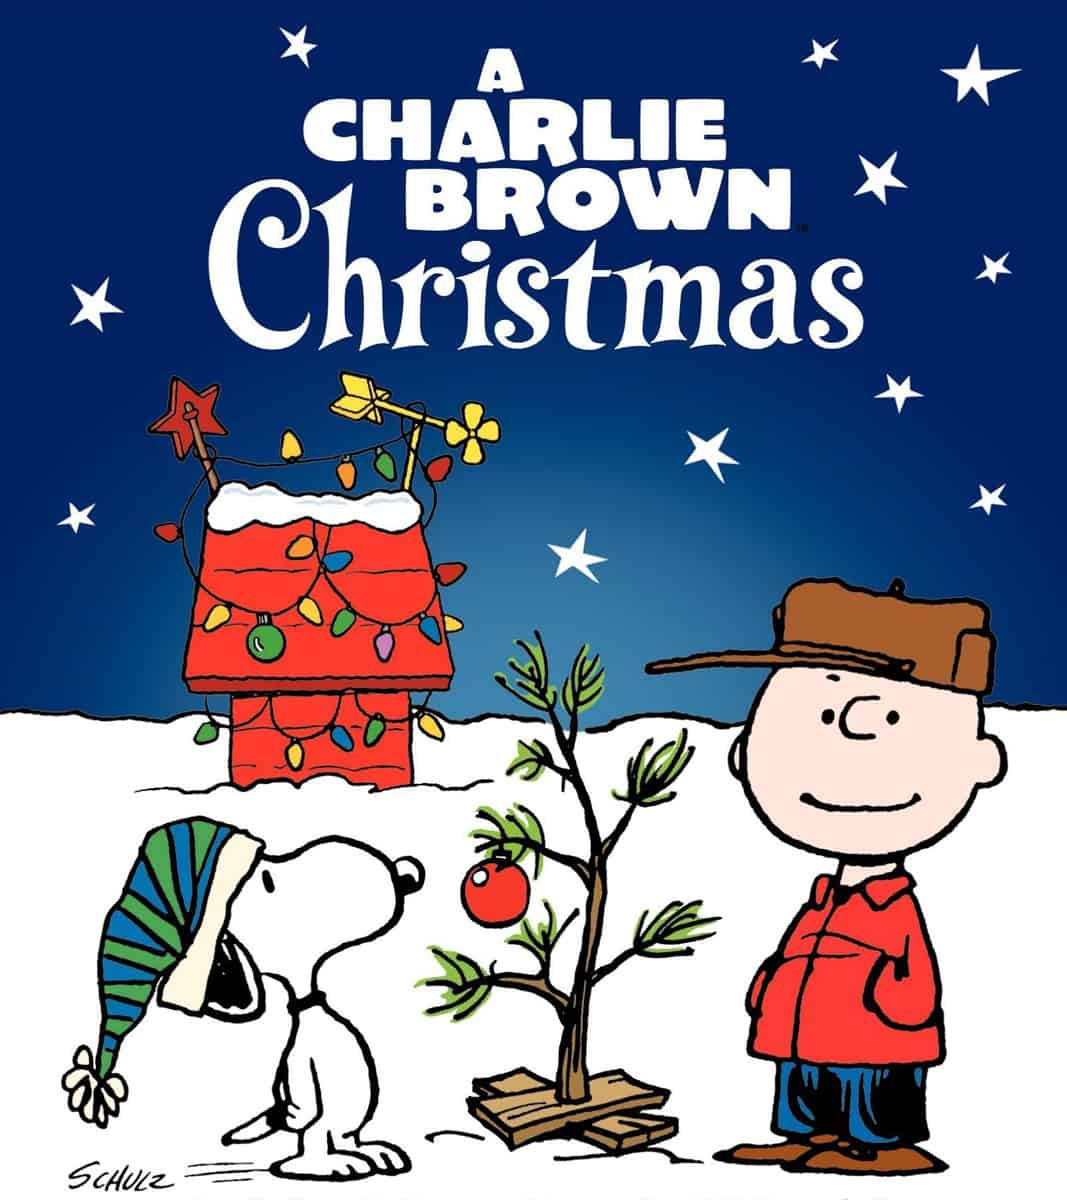 22 of the Best Classic Christmas Films For Families. A Charlie Brown Christmas